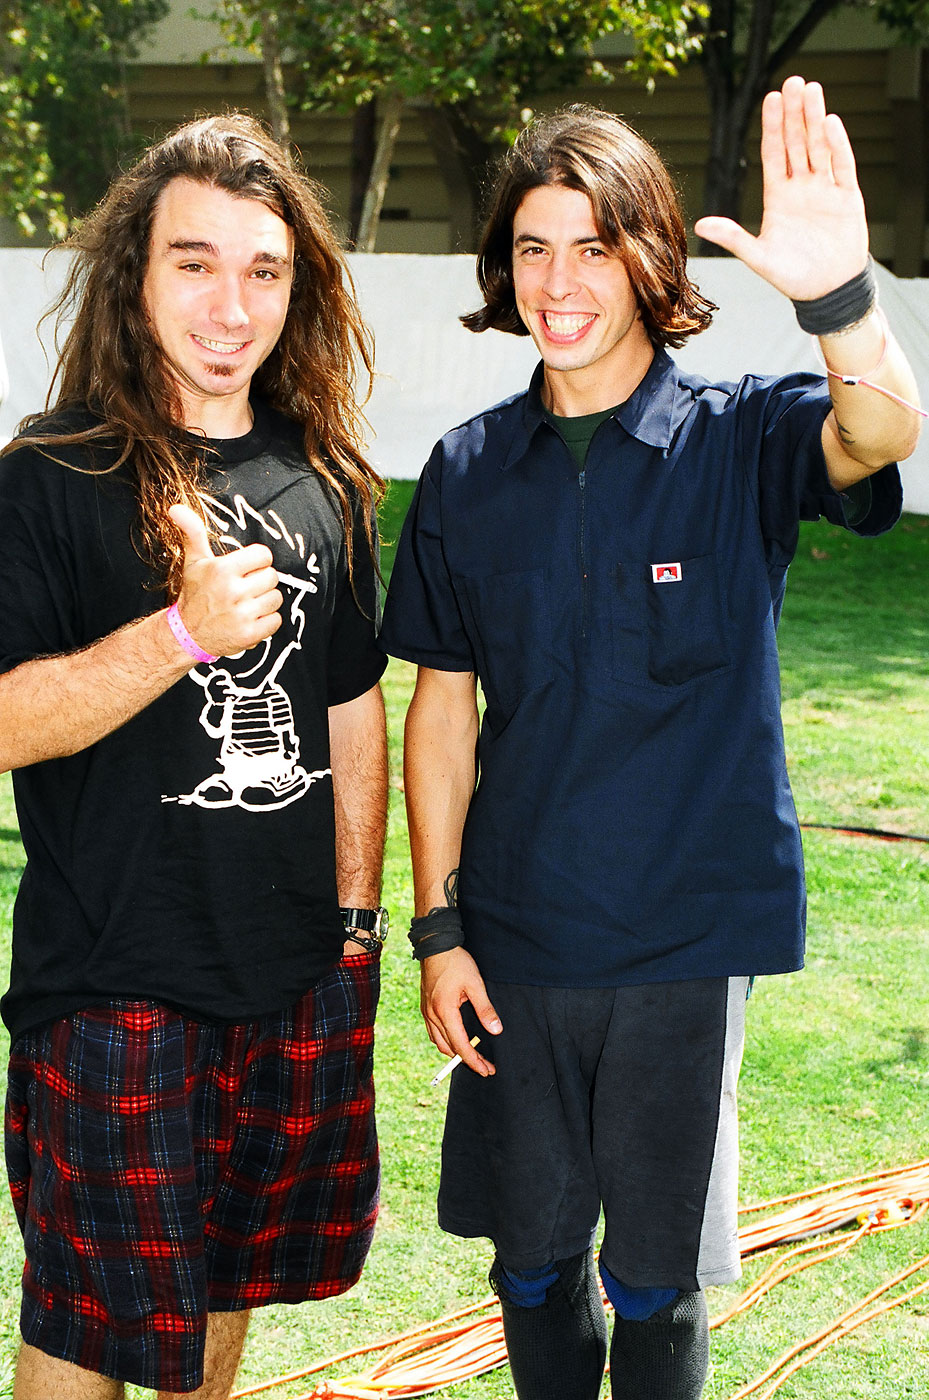 Dave Abruzzo of Pearl Jam and Dave Grohl of Nirvana in 1992.